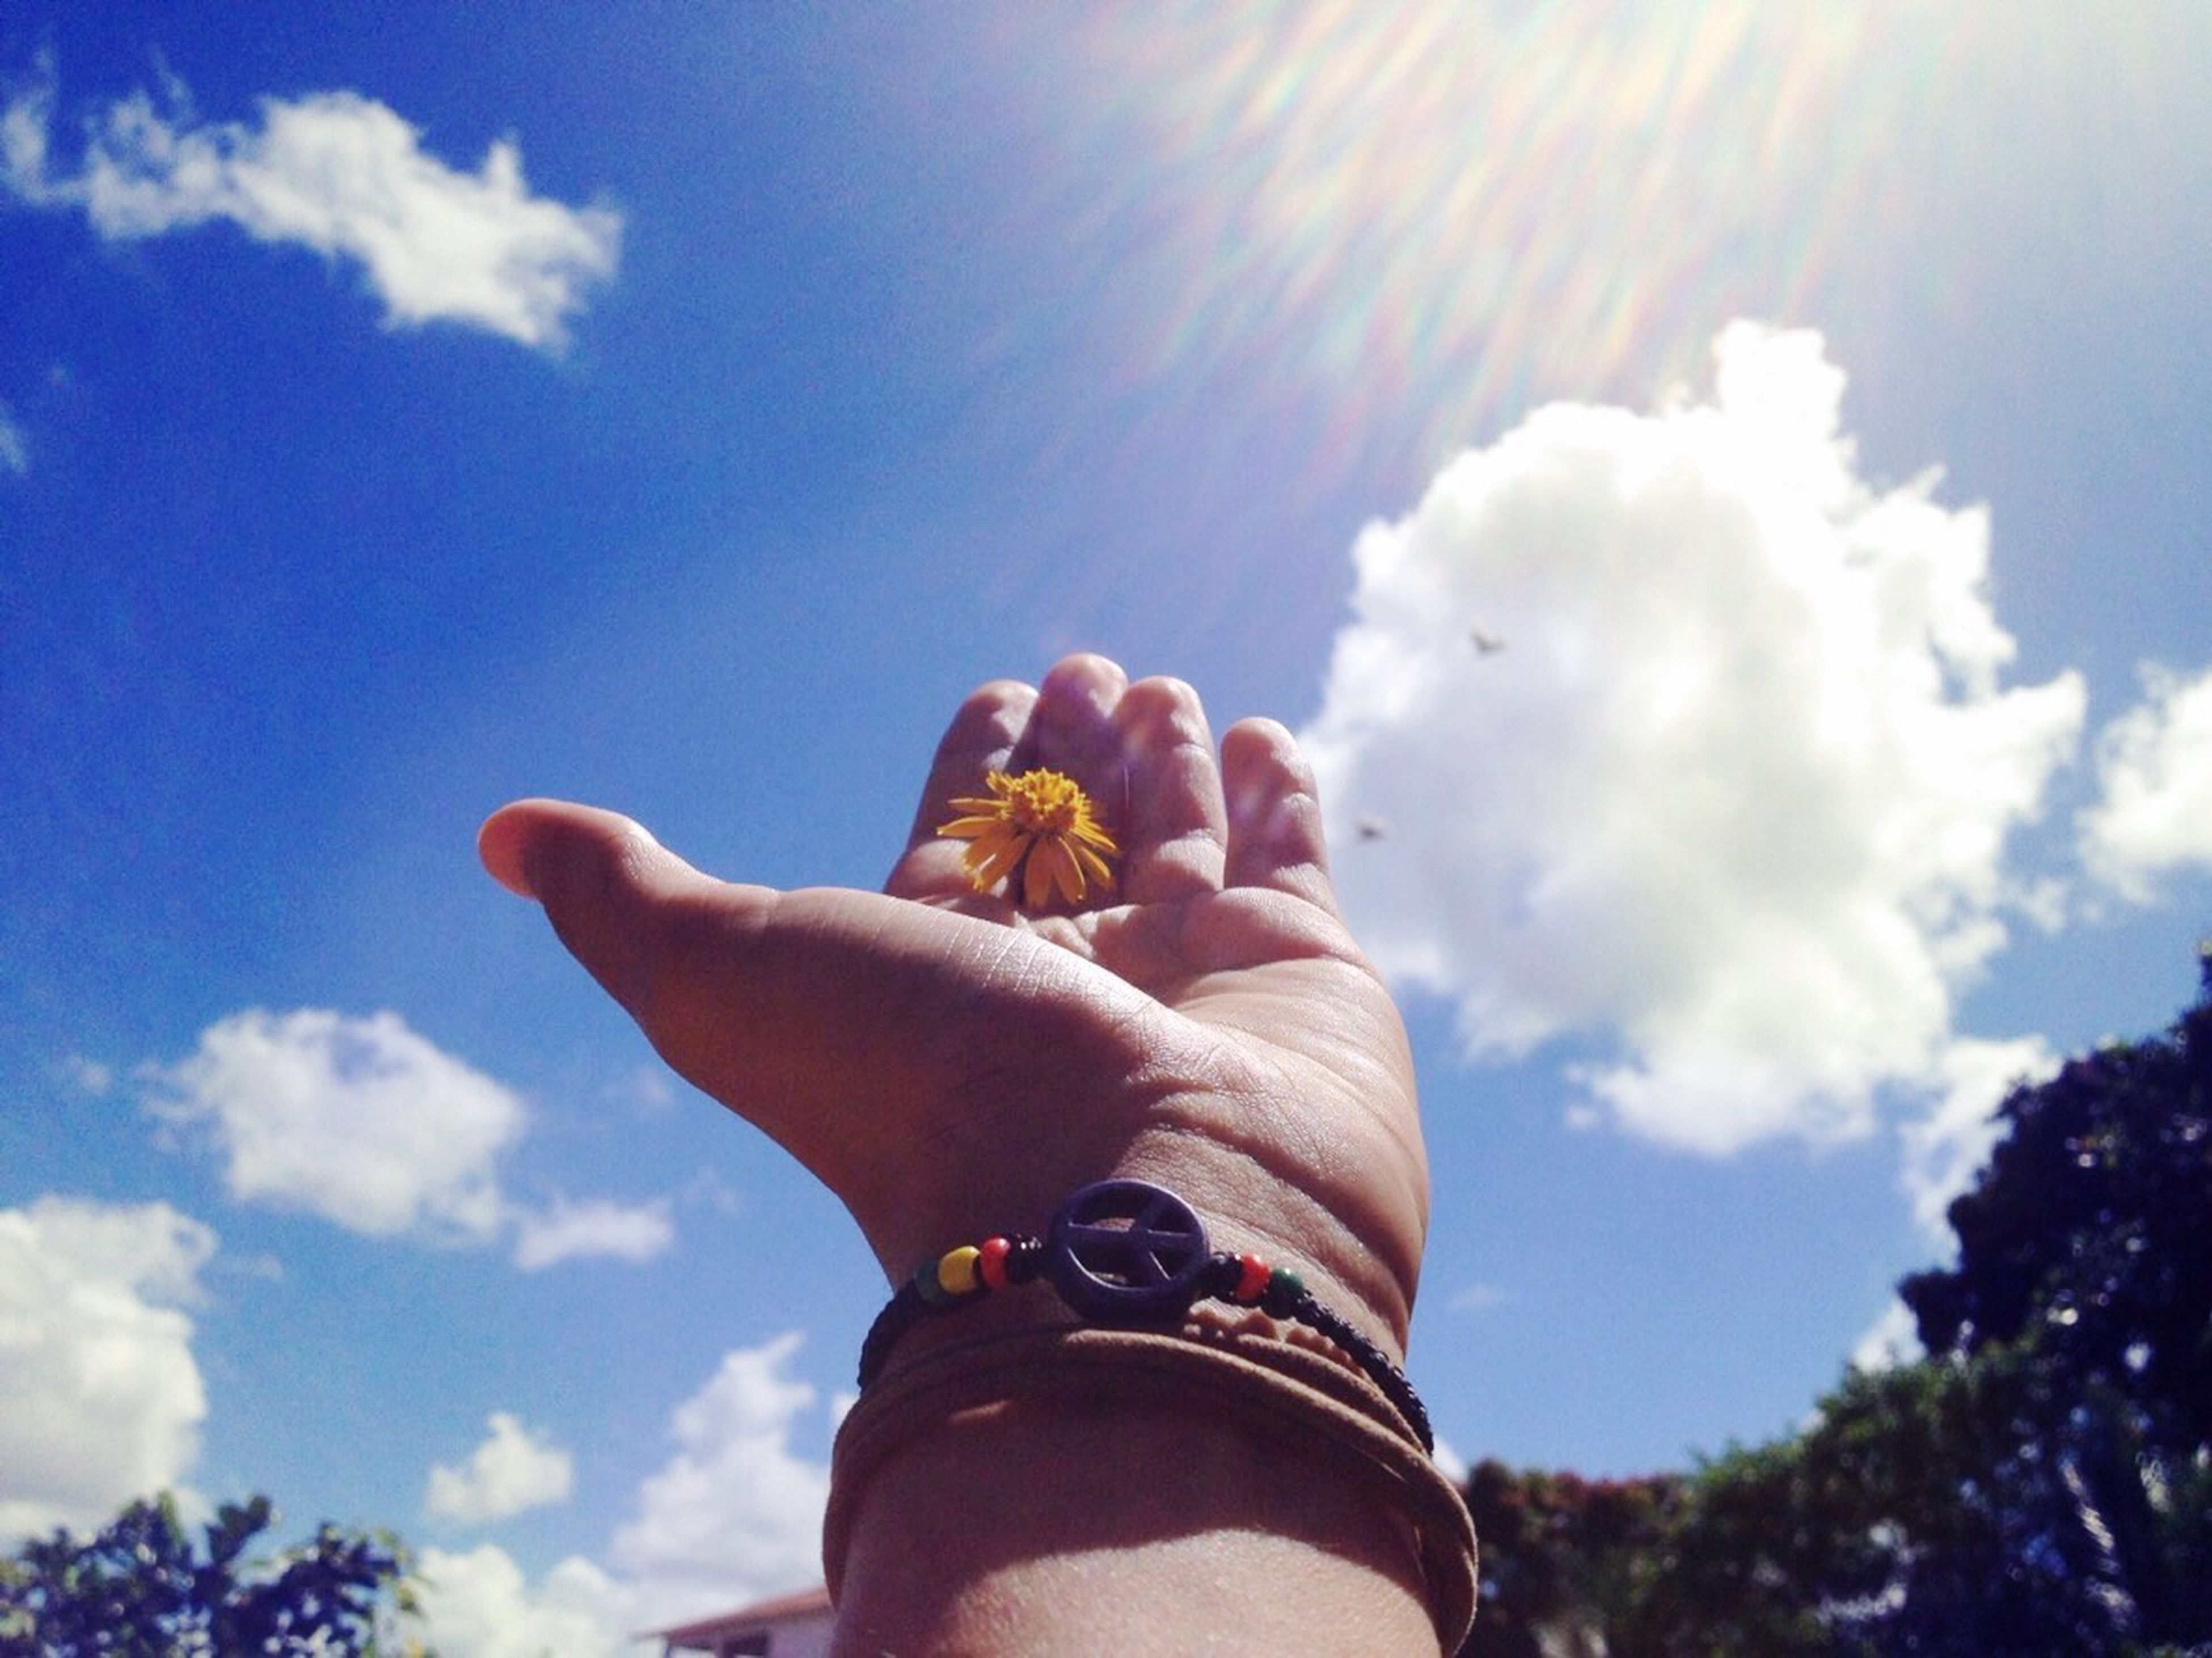 person, holding, personal perspective, part of, human finger, sky, cropped, lifestyles, leisure activity, unrecognizable person, cloud - sky, low angle view, sunlight, sun, cloud, sunbeam, lens flare